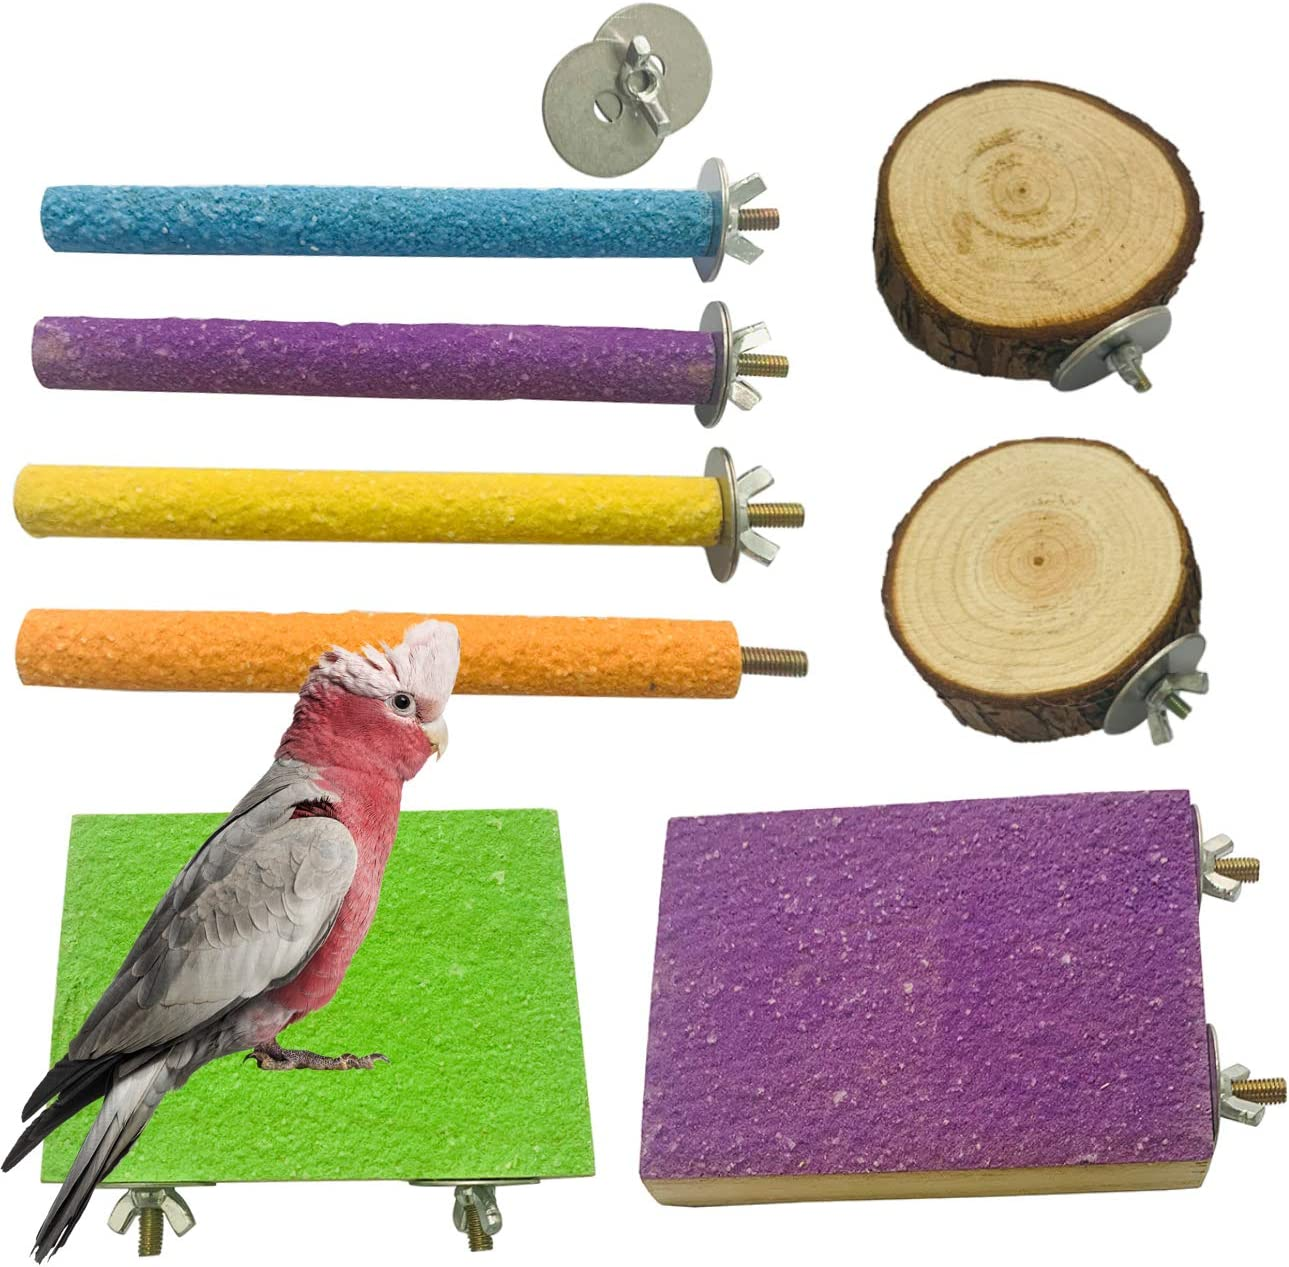 ZYYRT Parrot Perch Stand8PCS Wooden Bird Paw Grinding Stick Perch Stand PlatformParakeet Cage Accessories Exercise Toy for Budgies Conure Cockatiel